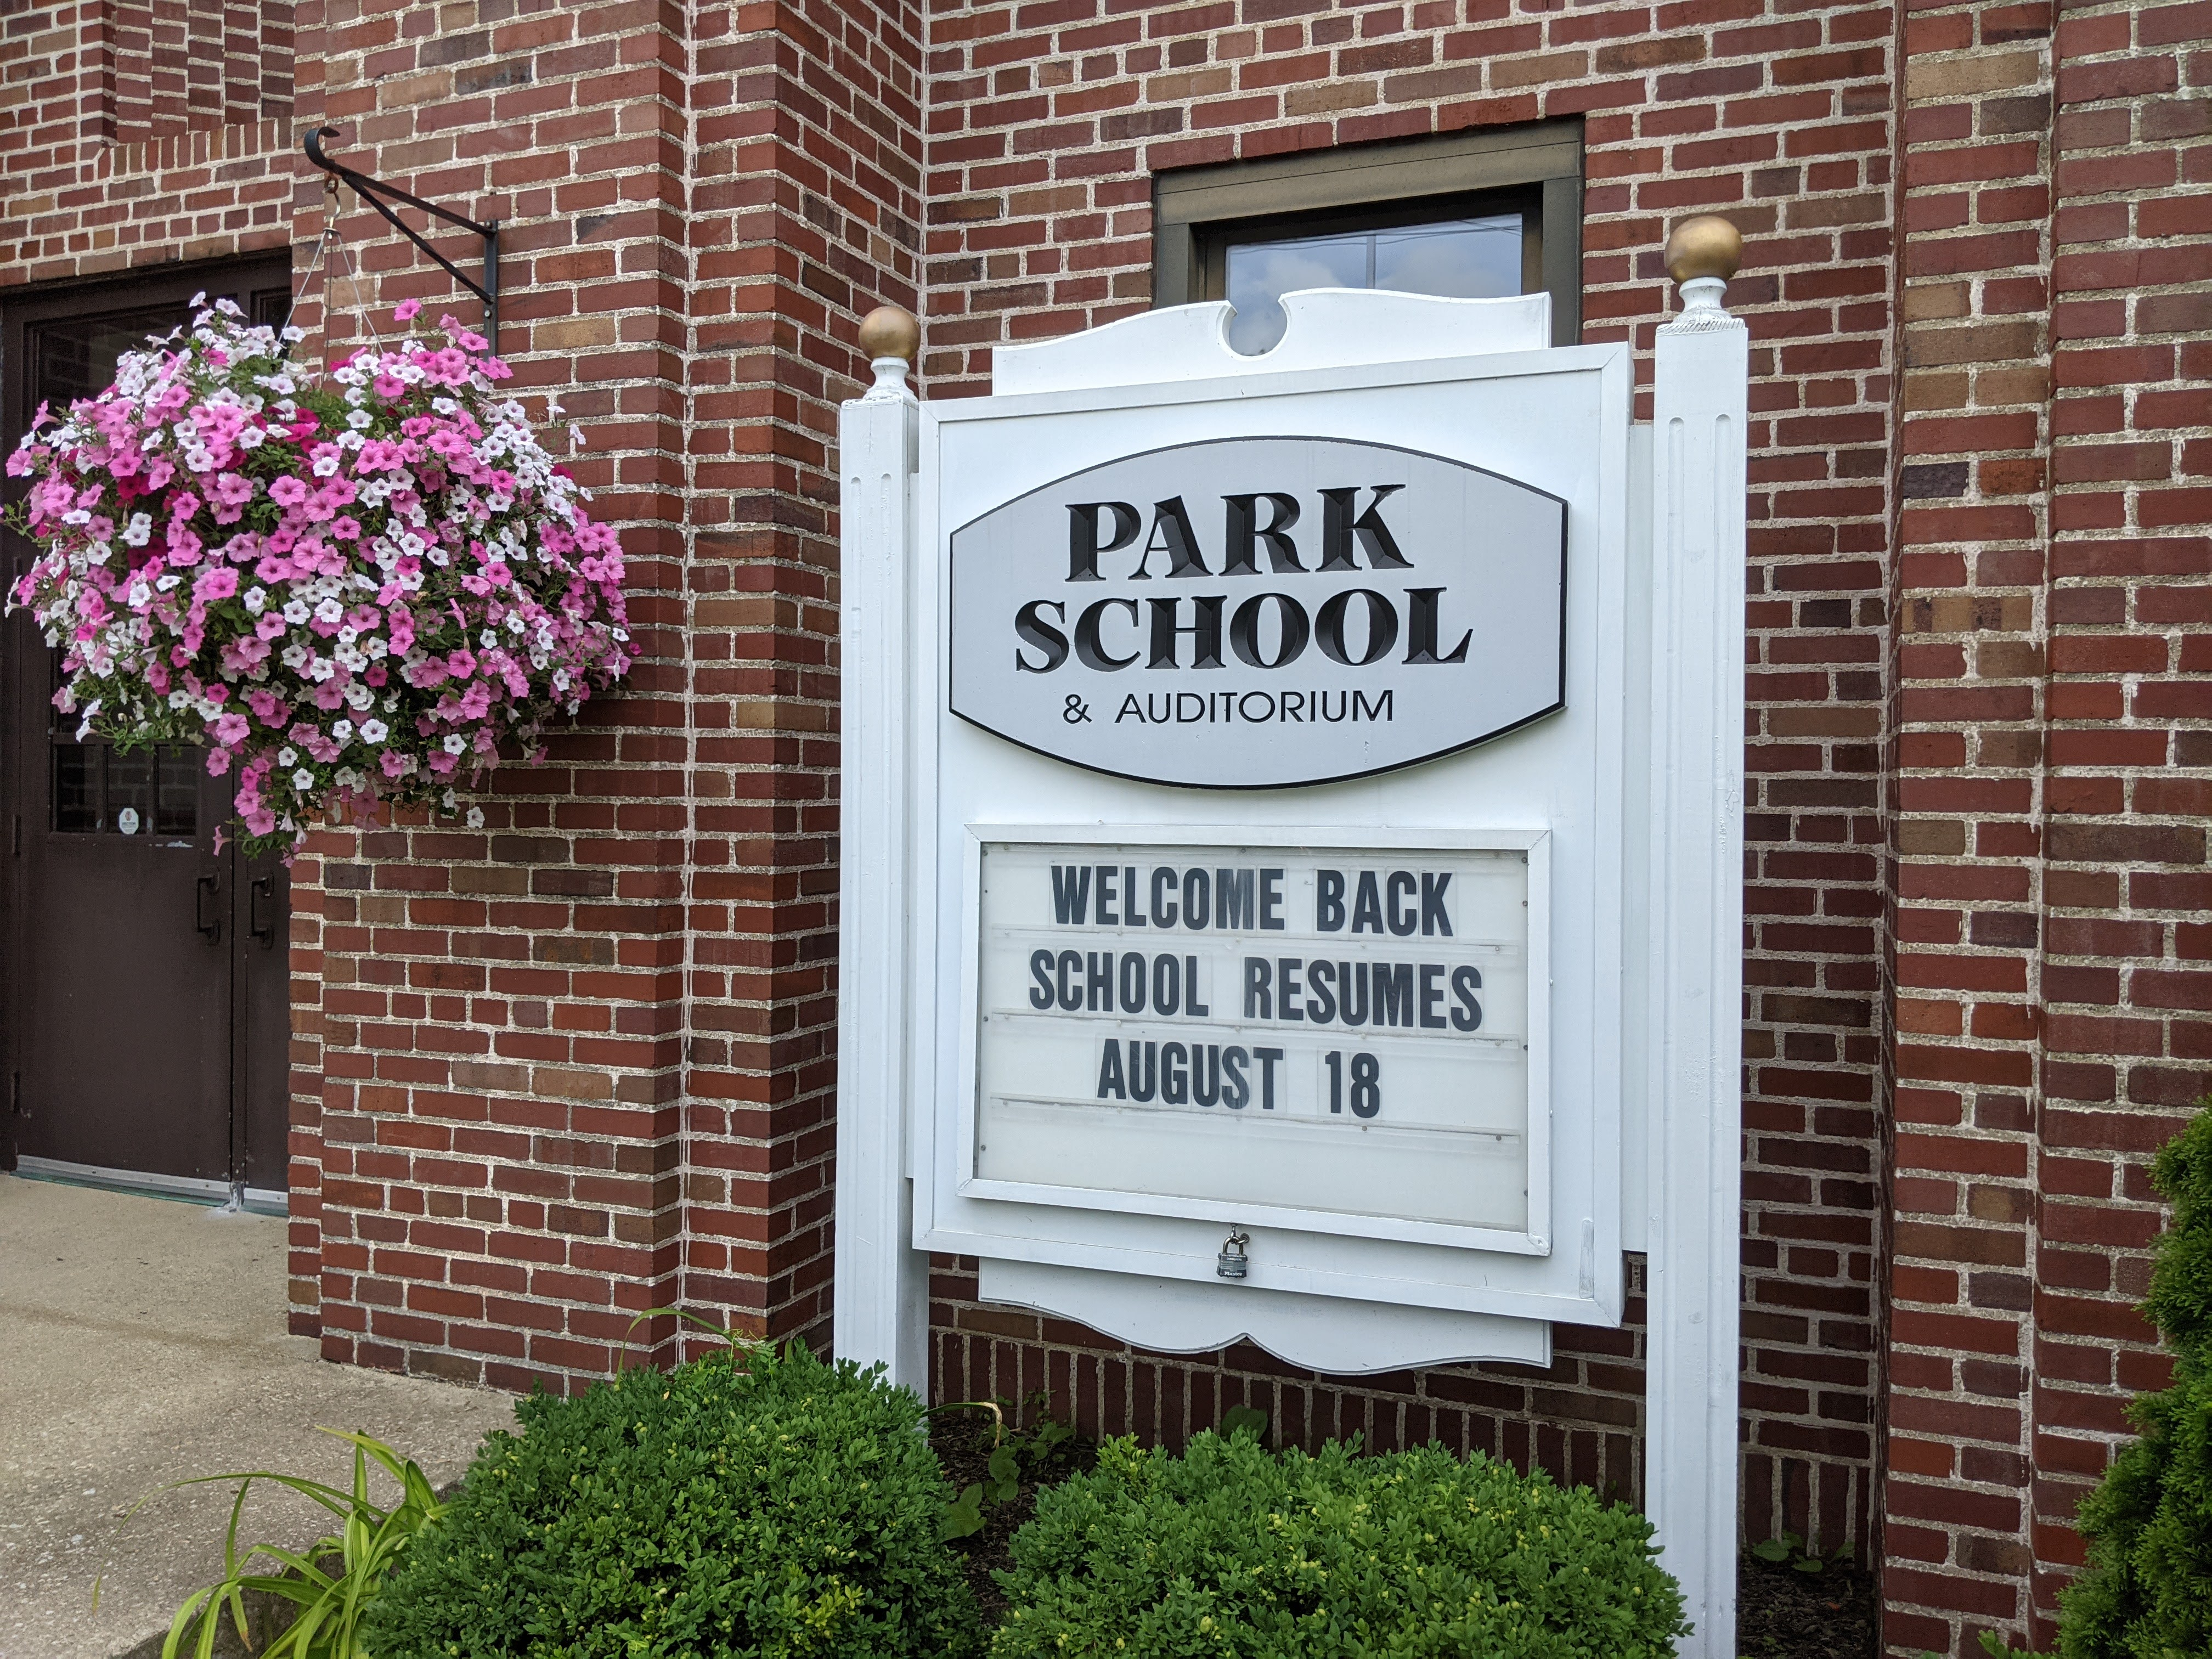 Marquee outside of Park Elementary:  Park School & Auditorium Welcome Back - School Resumes August 18; sign is in front of brick building with a large flower arrangement hanging beside it